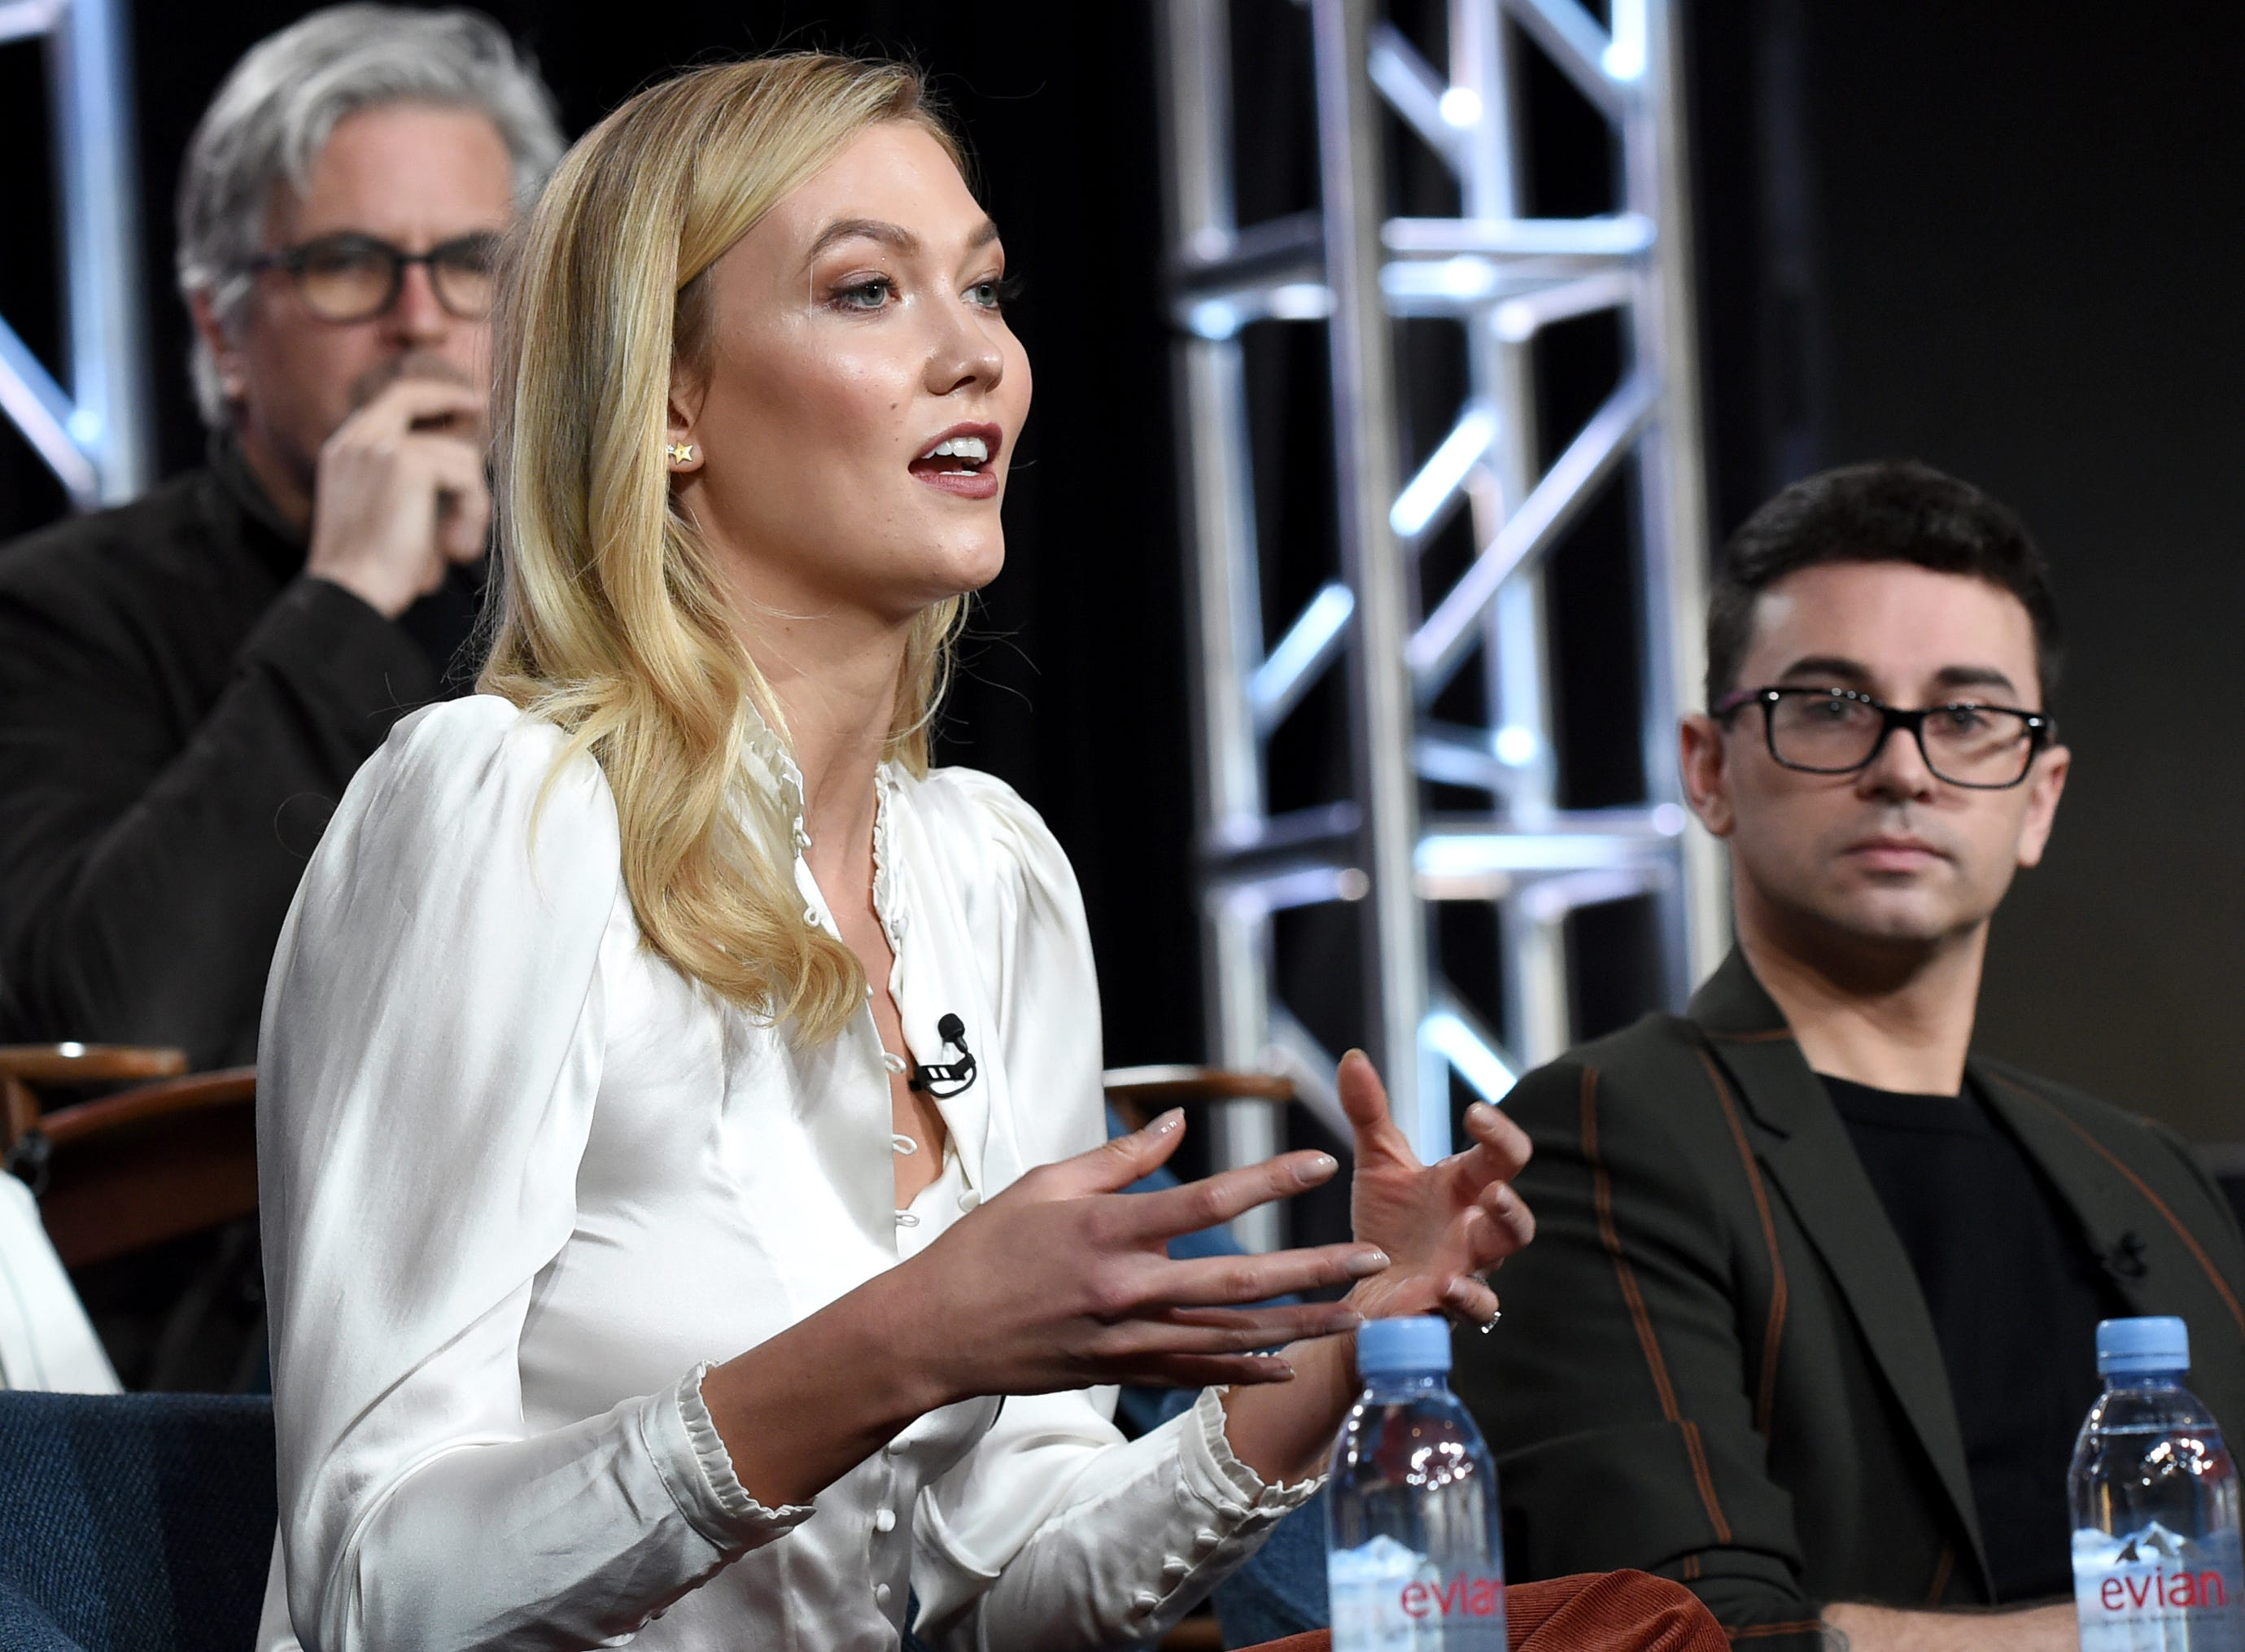 """Bravo presented its latest iteration of """"Project Runway"""" featuring model Karlie Kloss and former """"Project Runway"""" winner Christian Siriano."""